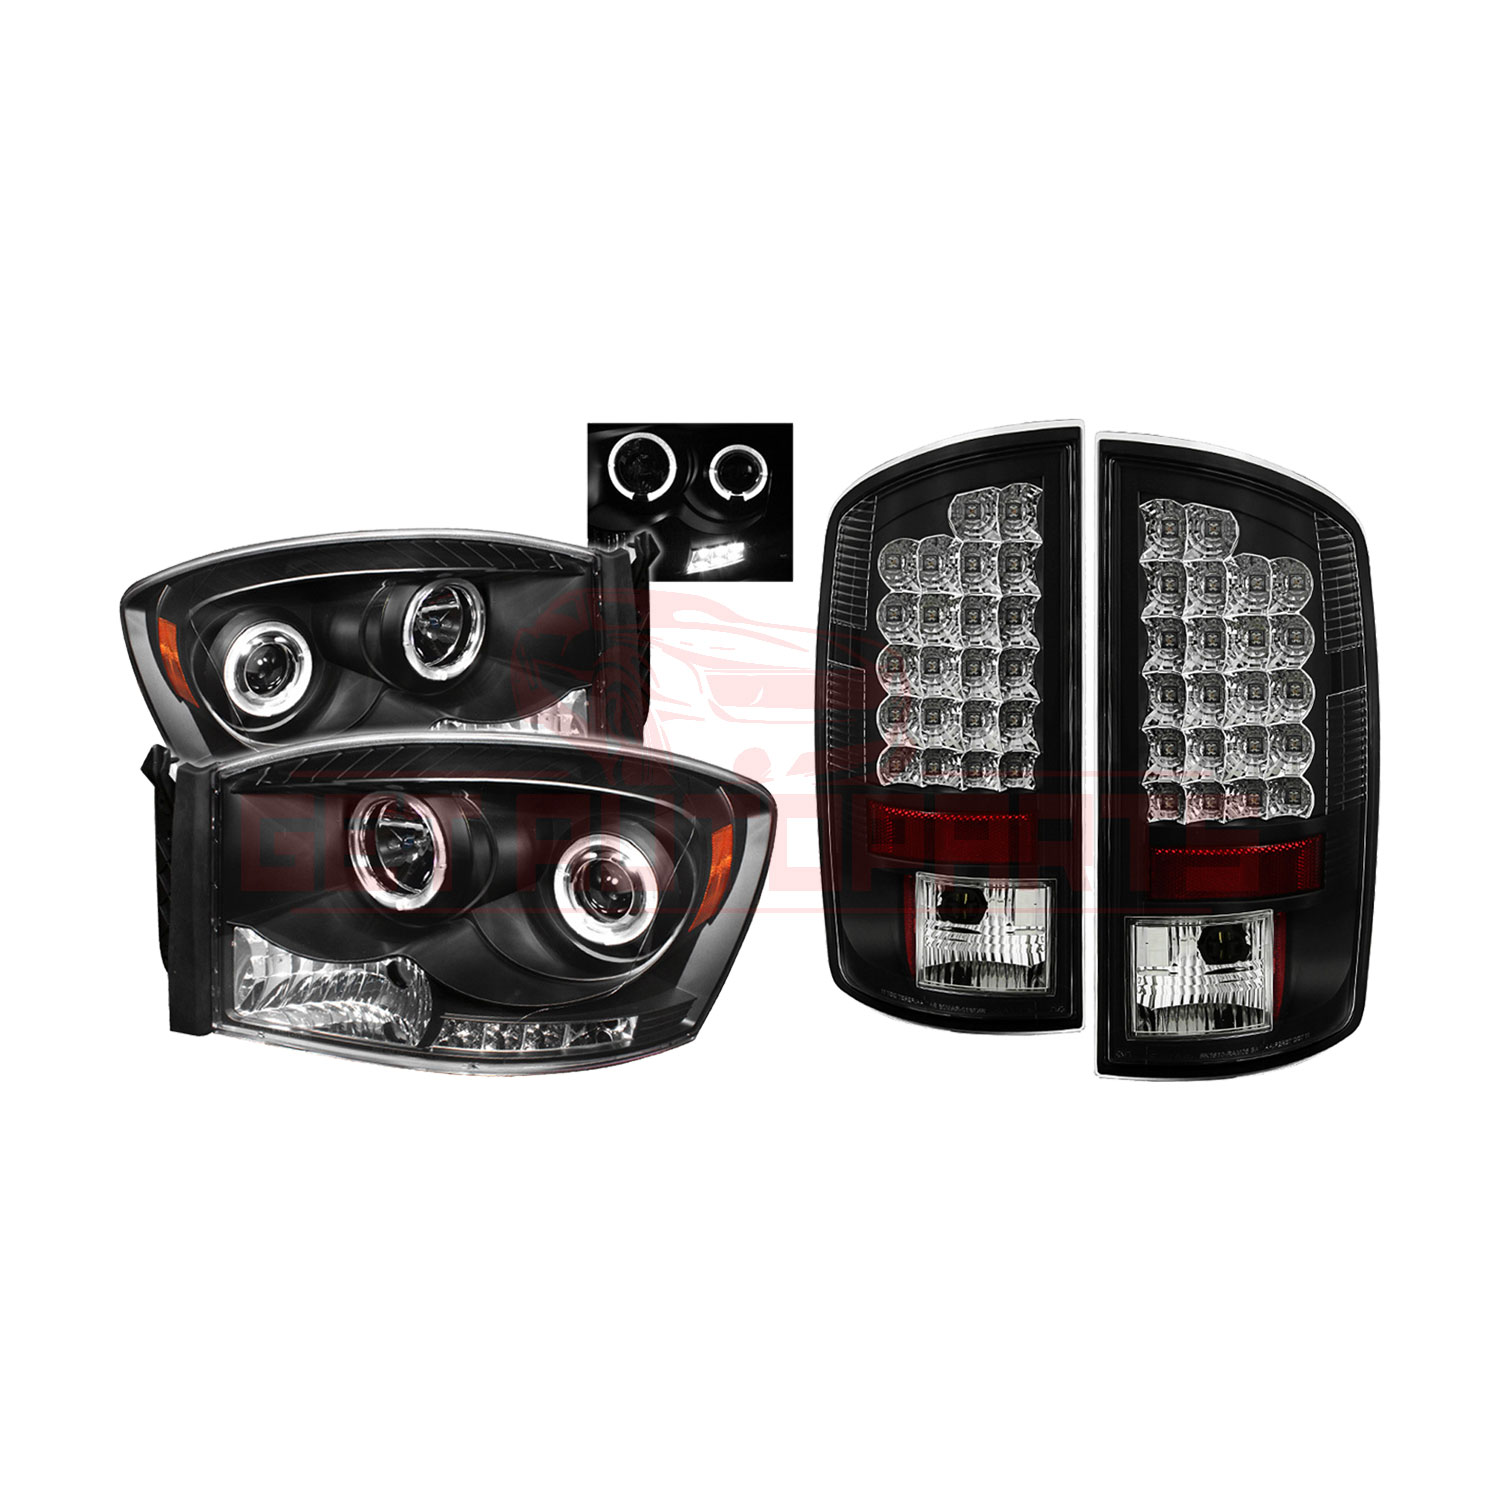 Spyder Halo LED Projector Headlights & LED Tail Lights for Dodge Ram 07-08 part in Headlight & Tail Light Covers category